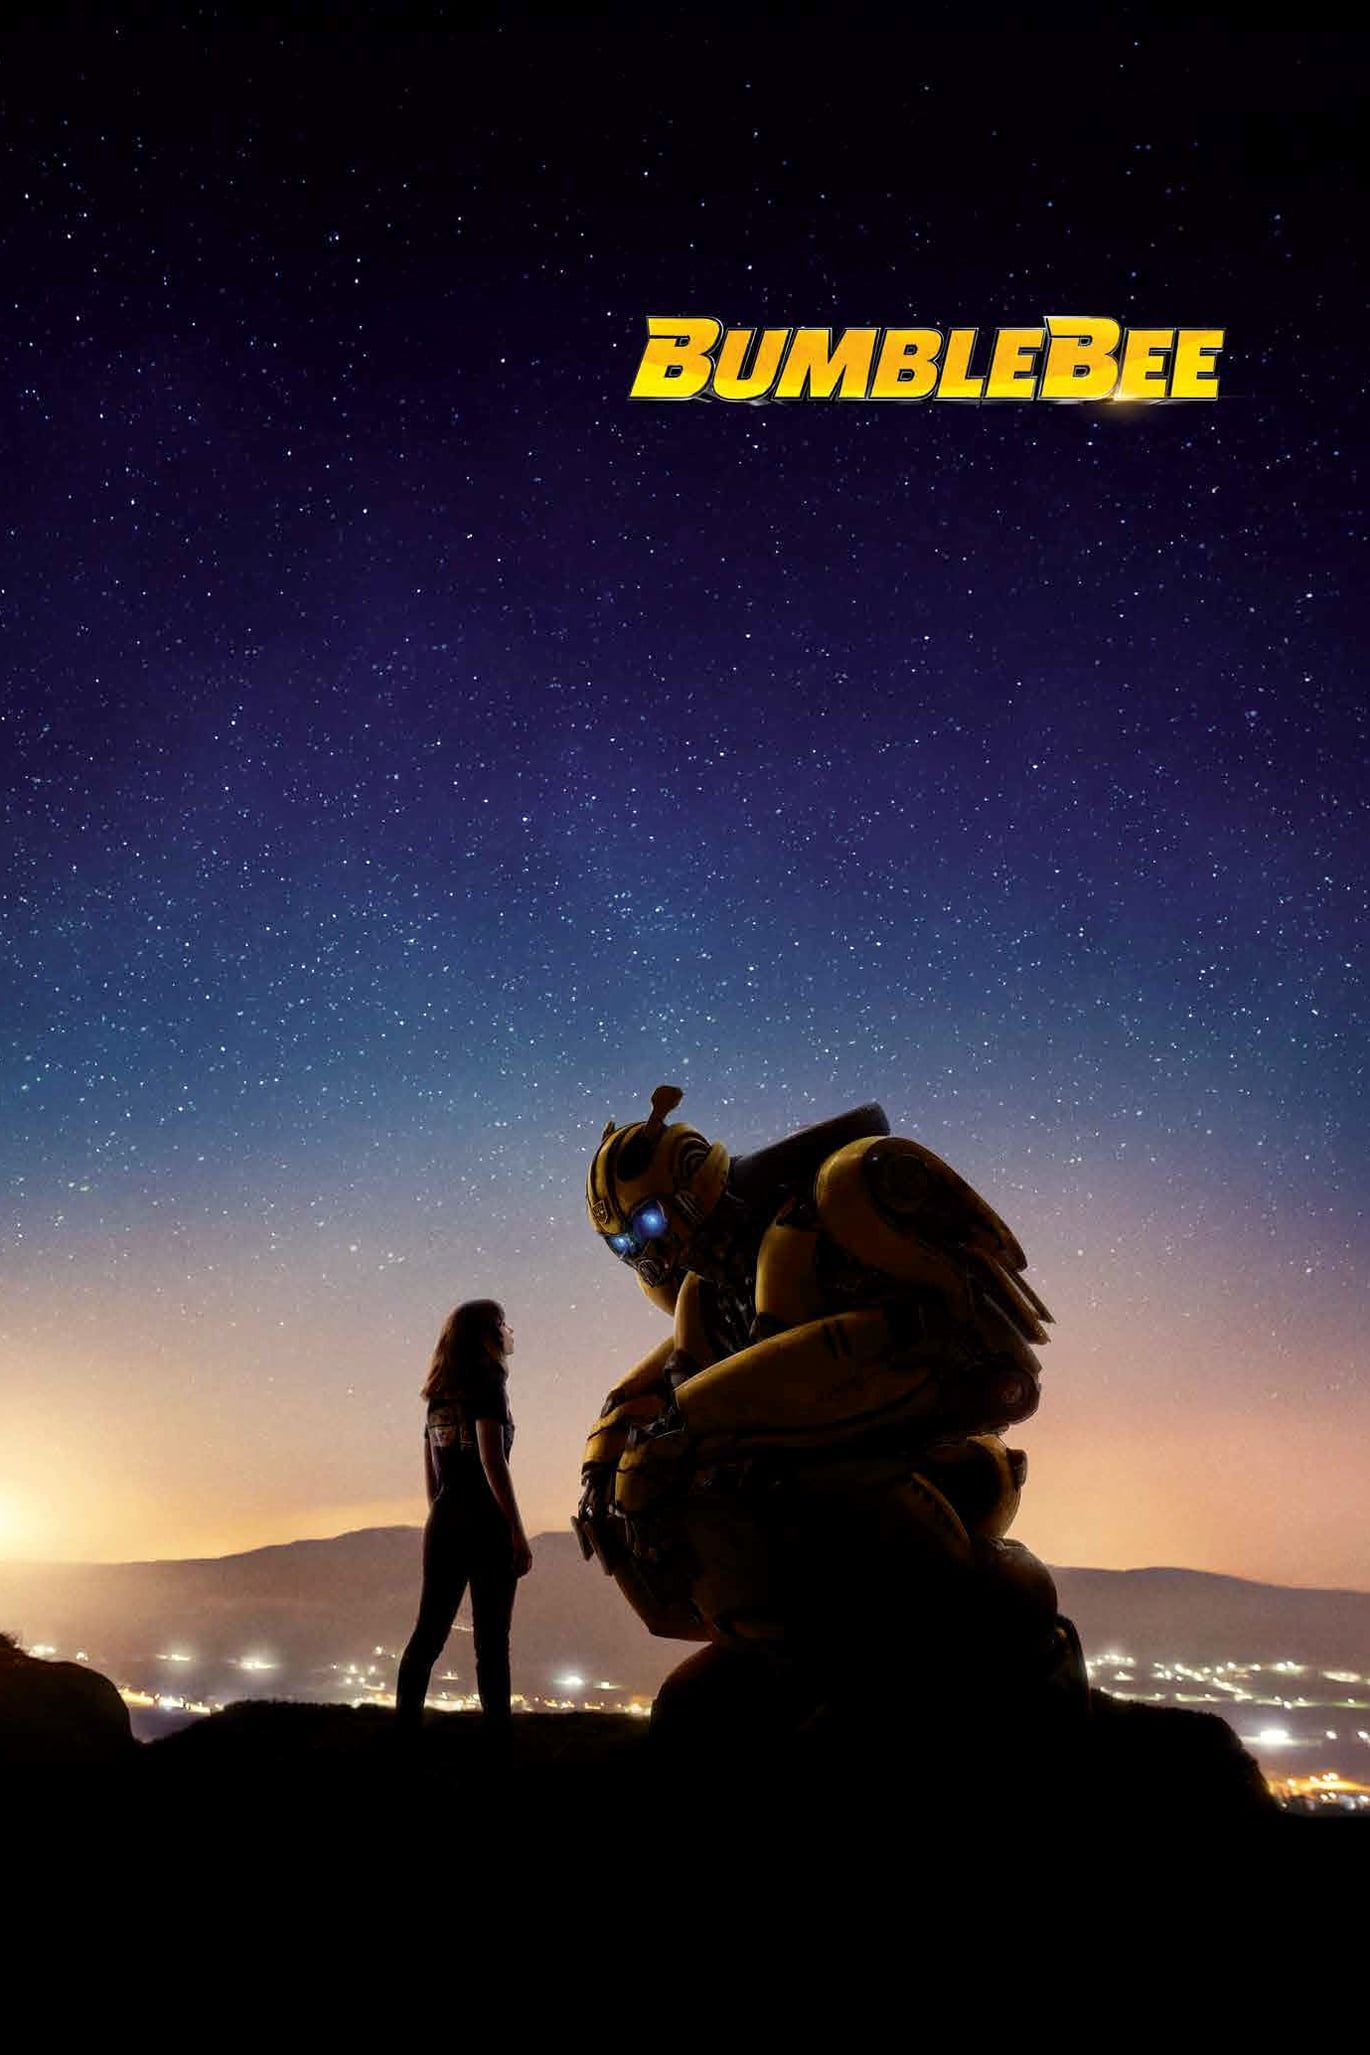 Bumblebee f u L L Movie line 2018 in 720P 850MB DVDrip [LEAKED